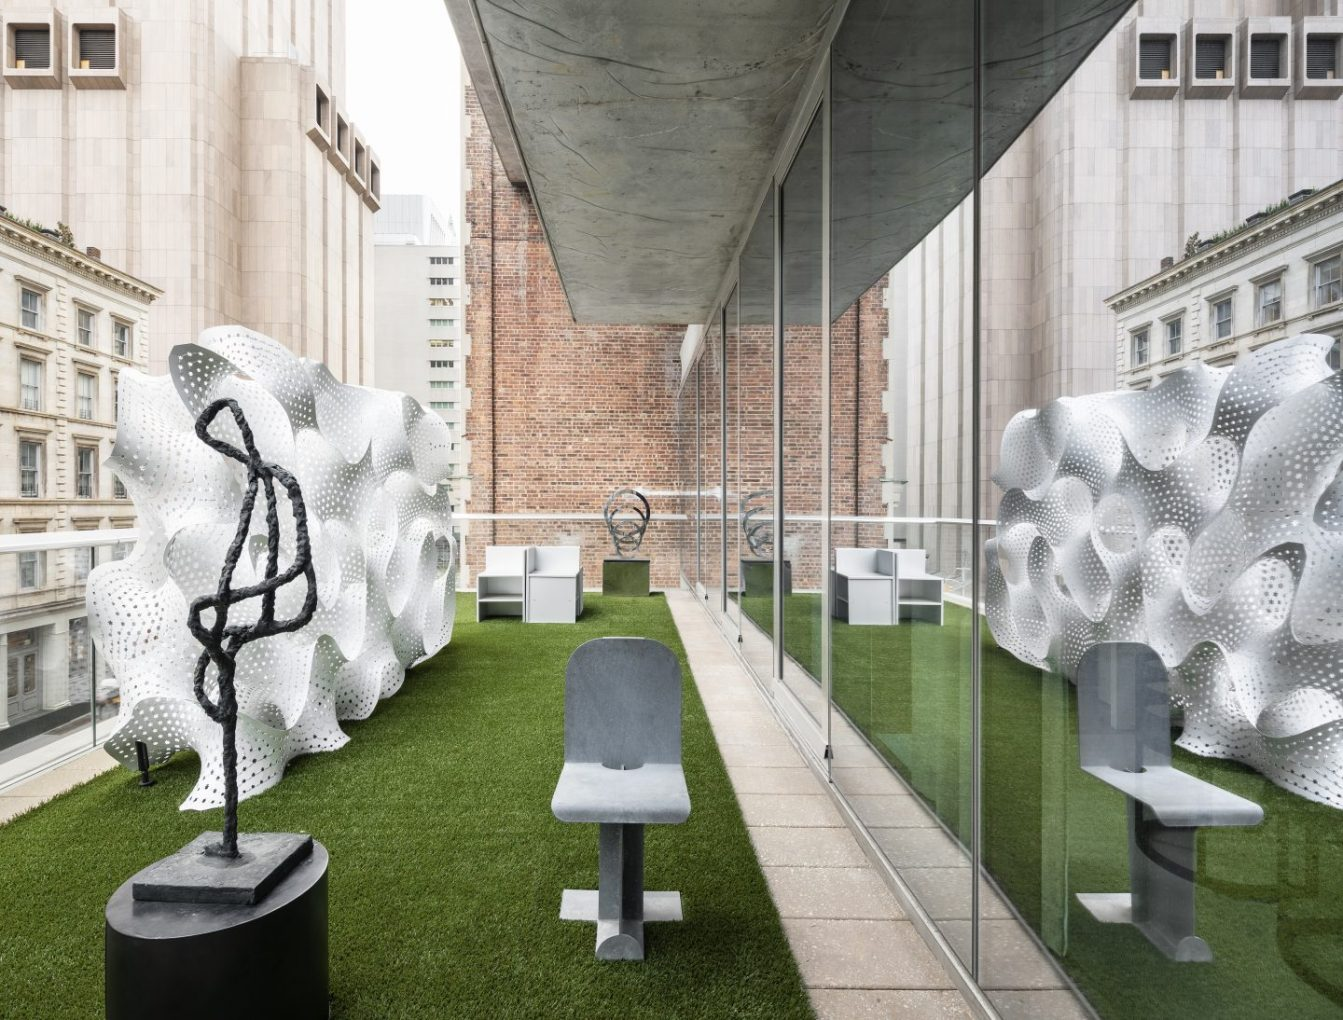 NYCxDesign AwardS 2019: All the winners nycxdesign awards 2019: all the winners NYCXDESIGN AWARDS 2019: ALL THE WINNERS sculpure garden